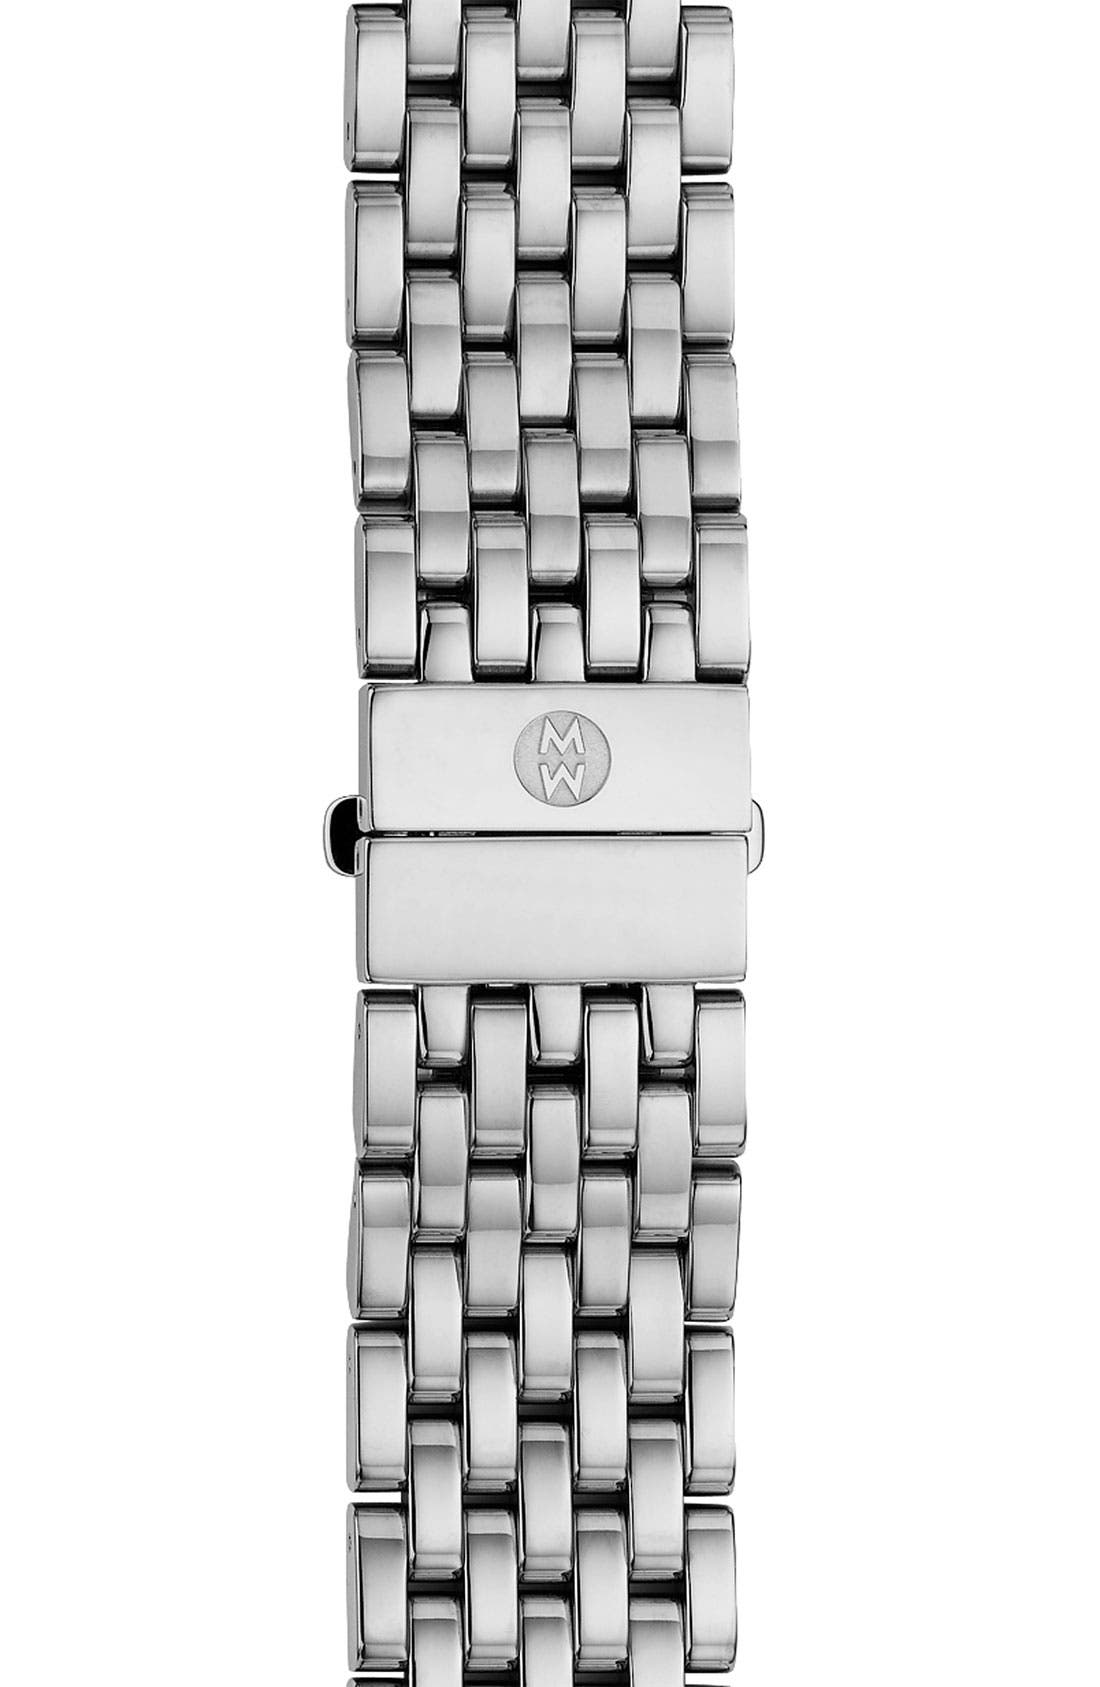 Alternate Image 1 Selected - MICHELE 'Serein' Diamond Watch Case & 18mm Bracelet